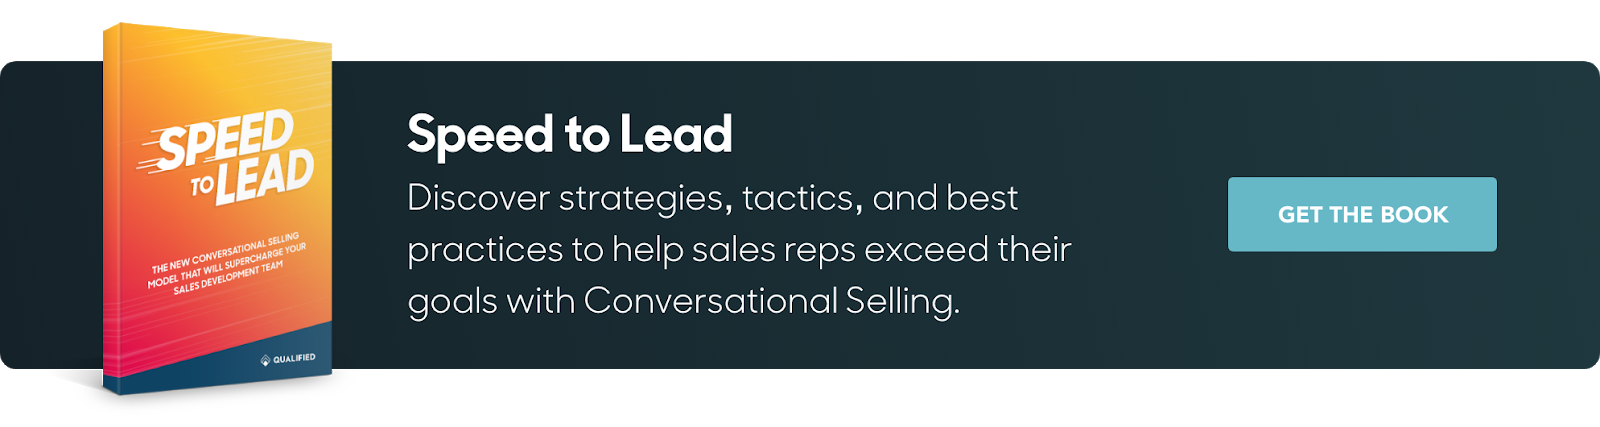 Qualified's Speed to Lead book highlights strategies to help sales reps exceed their goals with Conversational Selling